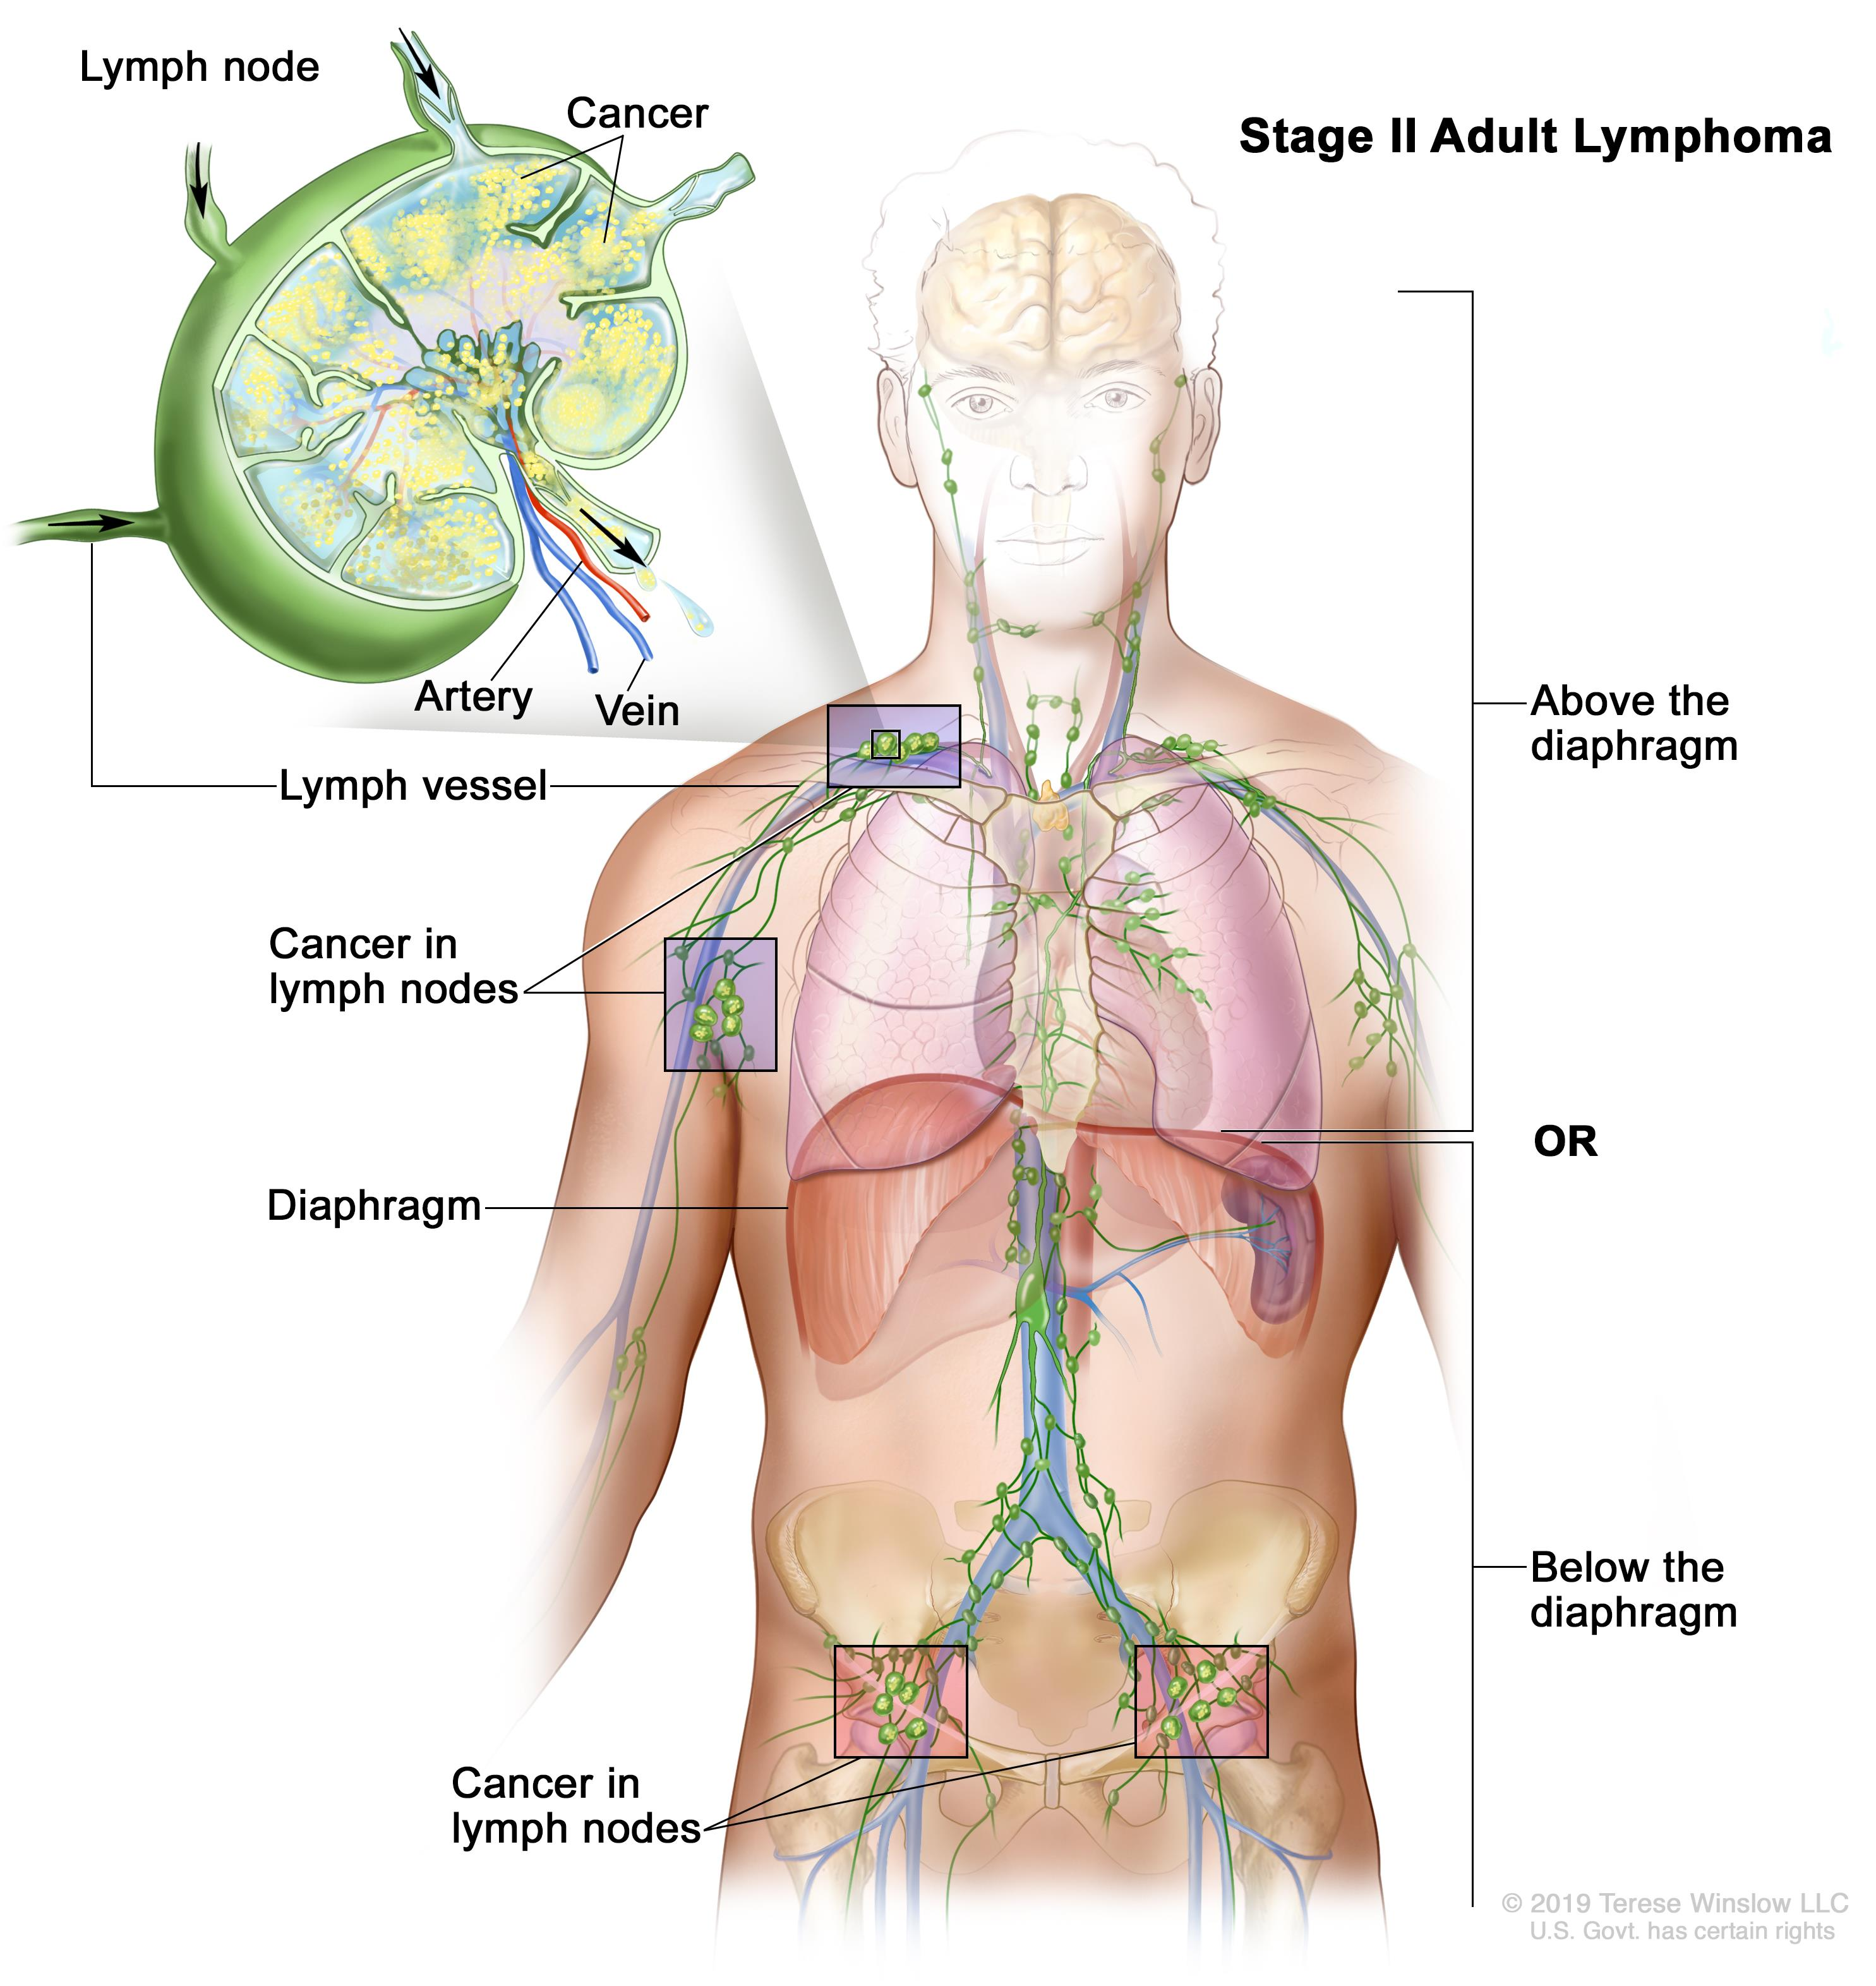 aggressive cancer in lymph nodes)